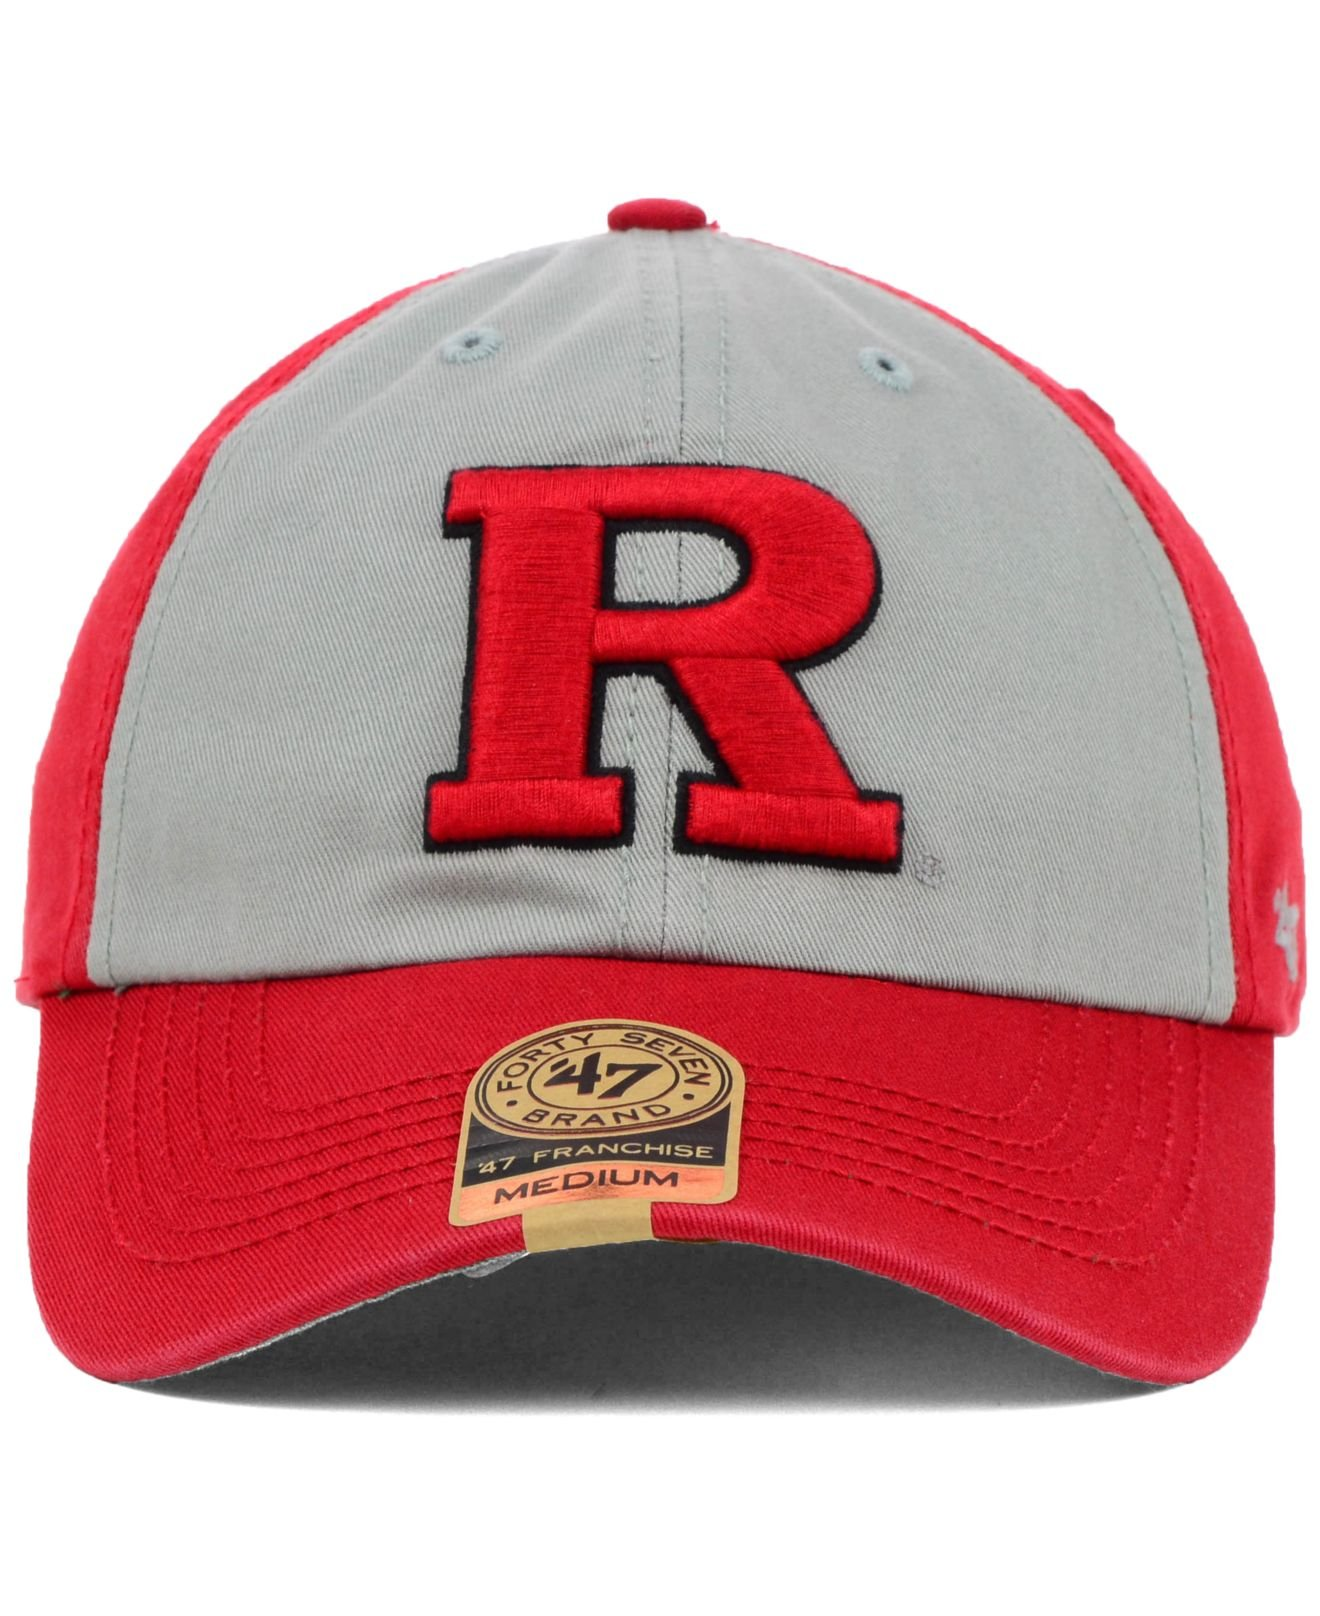 separation shoes a1c26 e7f24 47 Brand Rutgers Scarlet Knights Vip Franchise Cap in Red for Men - Lyst